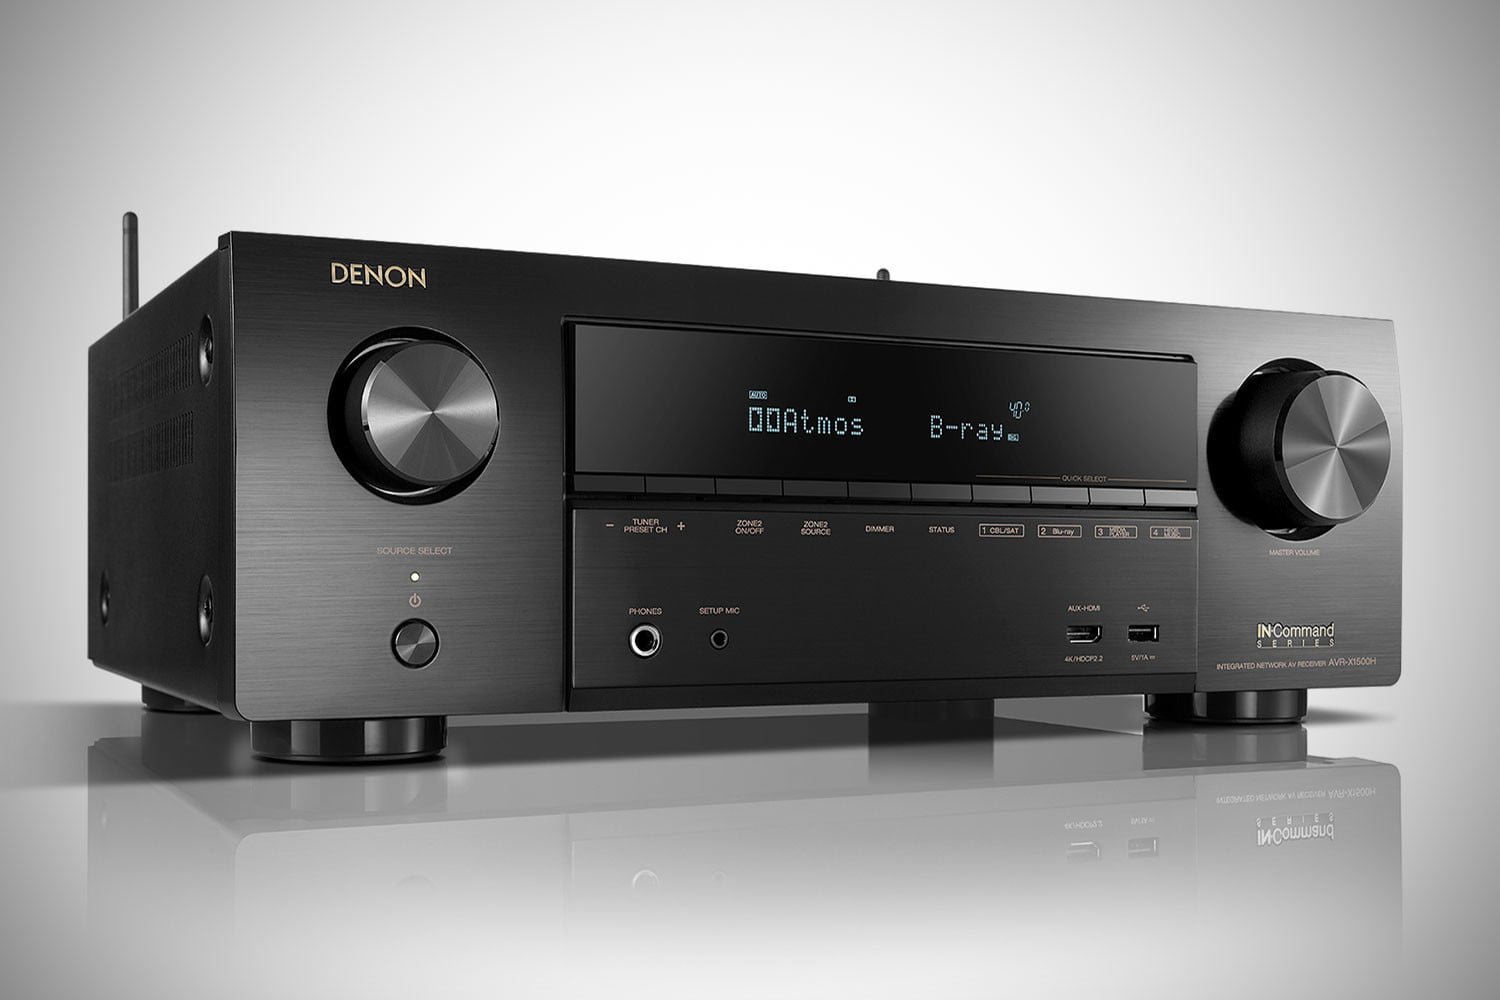 Denon Adds Six New Models To X Series S A V Receivers Wiring Diagrams Of Tv And Home Stereo Components With Av Surround Receiver Digital Trends